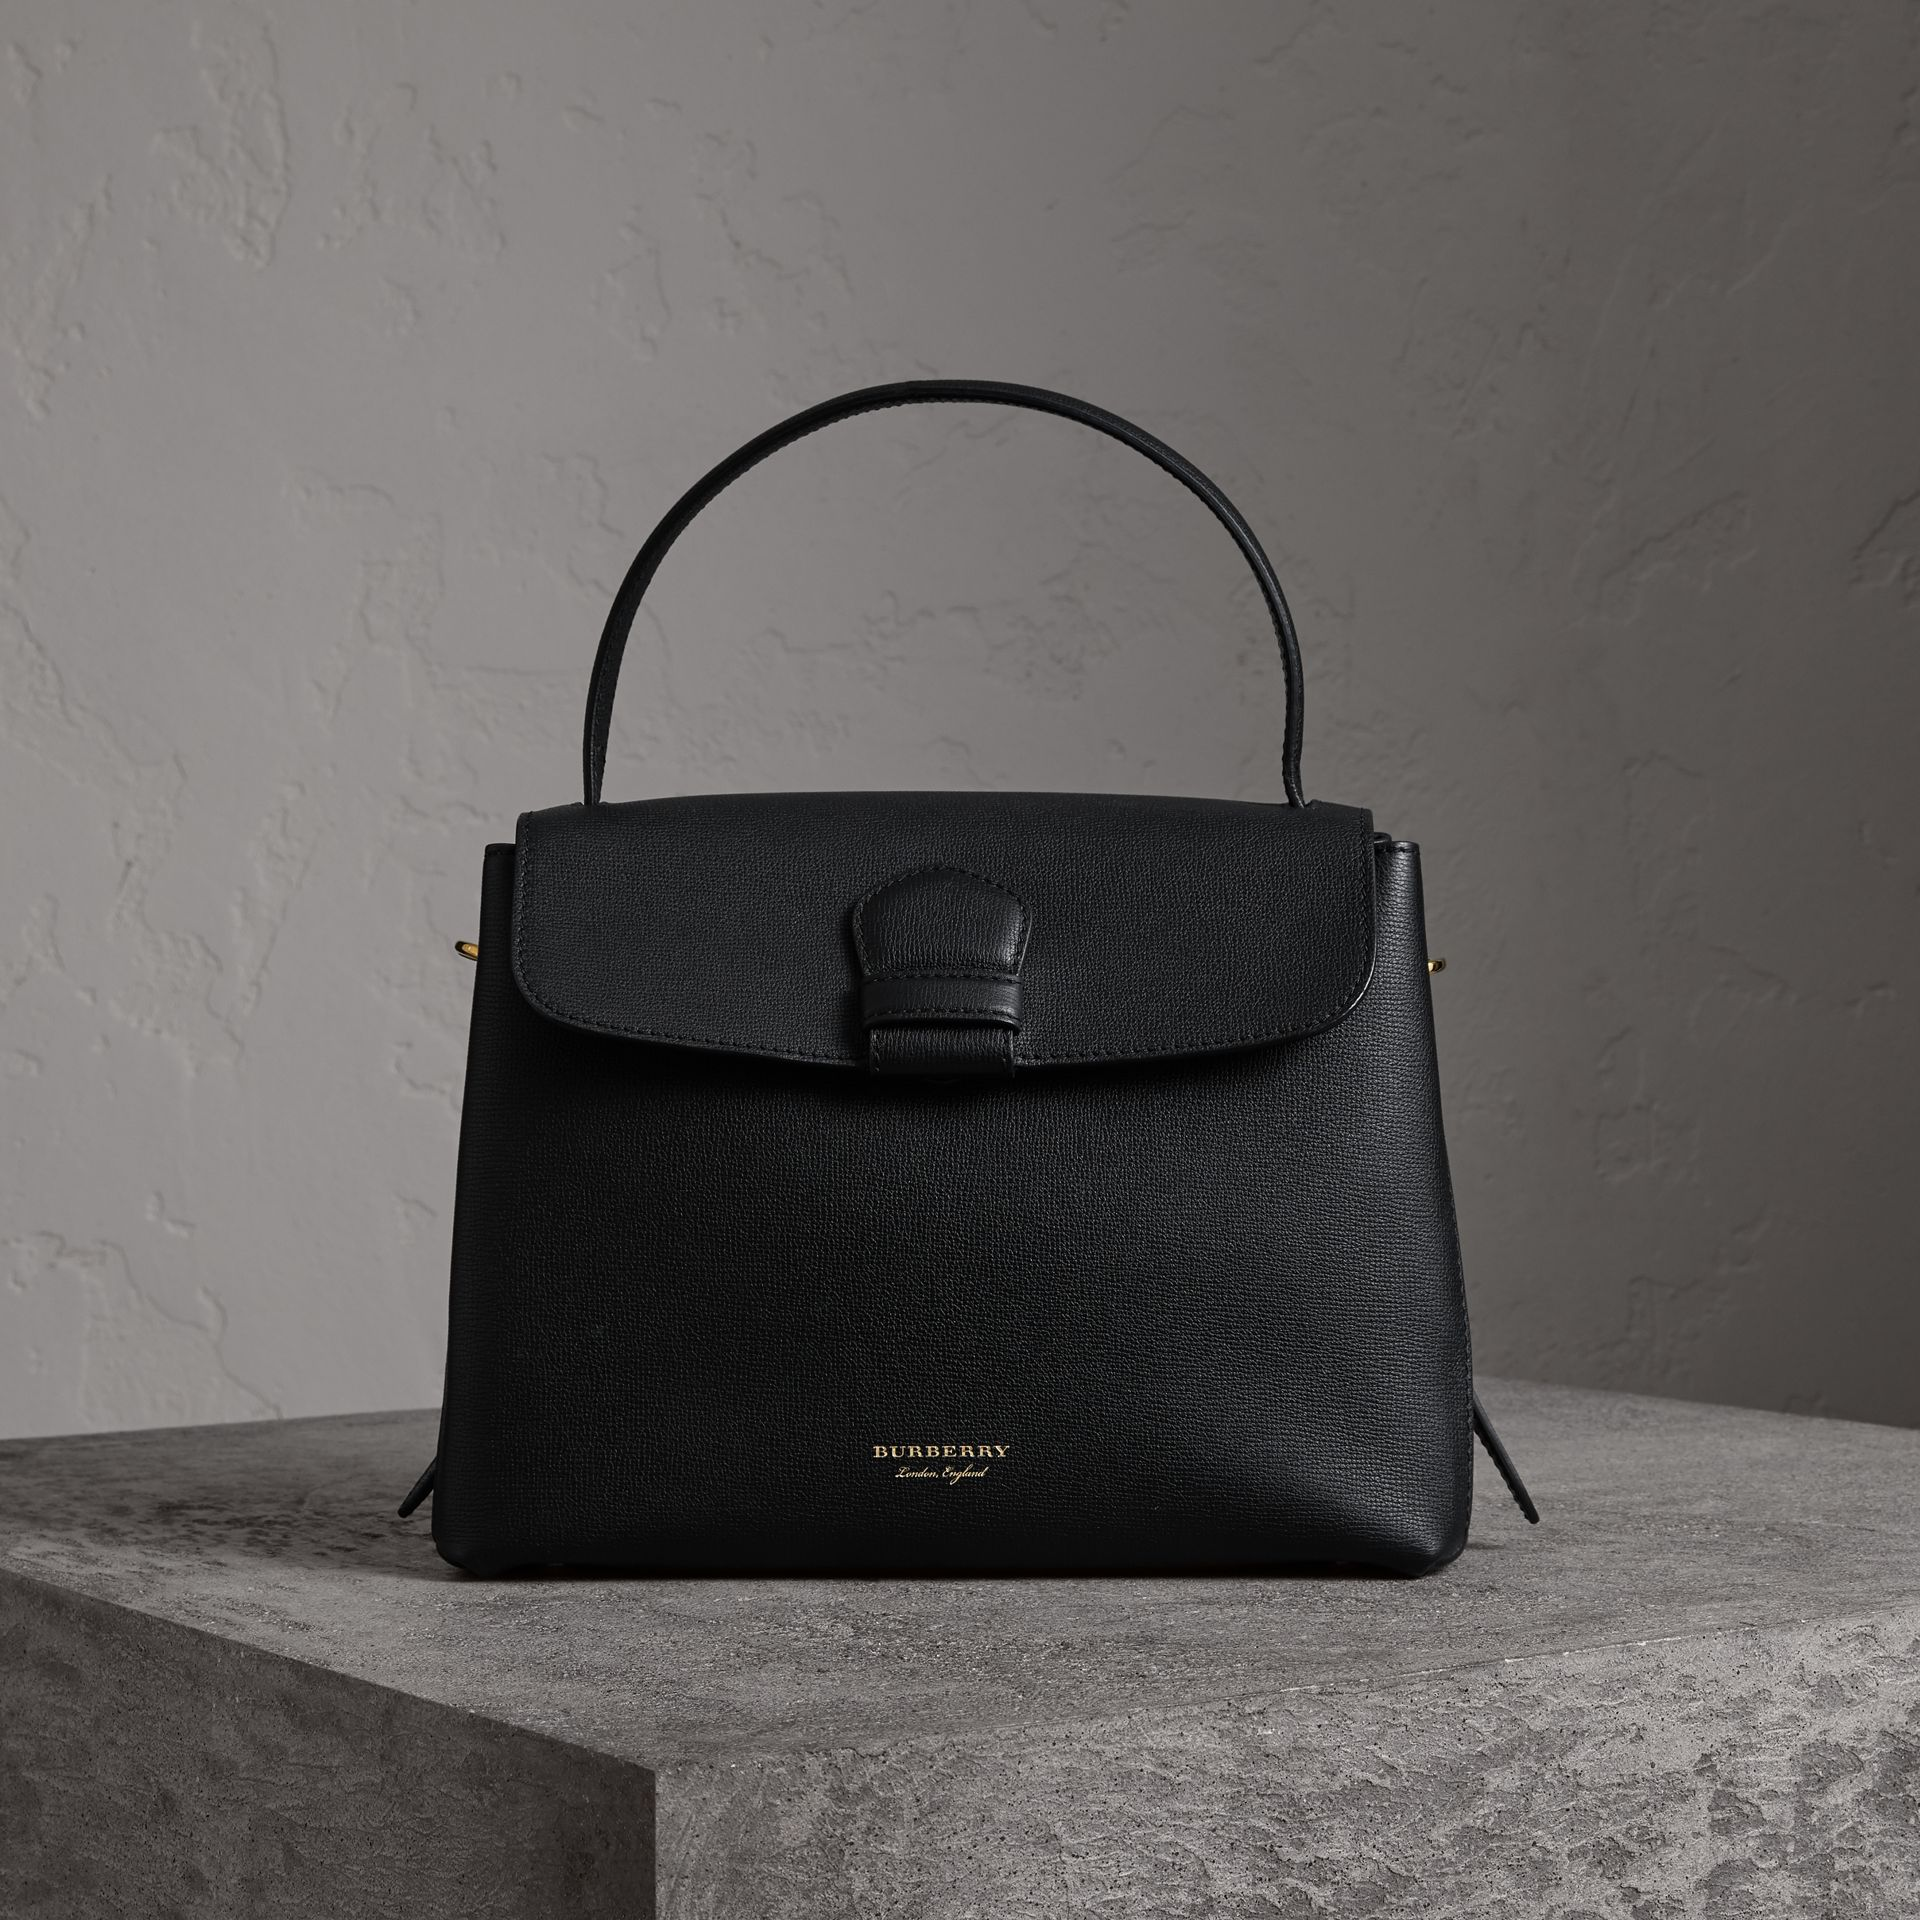 Medium Grainy Leather and House Check Tote Bag in Black - Women | Burberry Singapore - gallery image 6